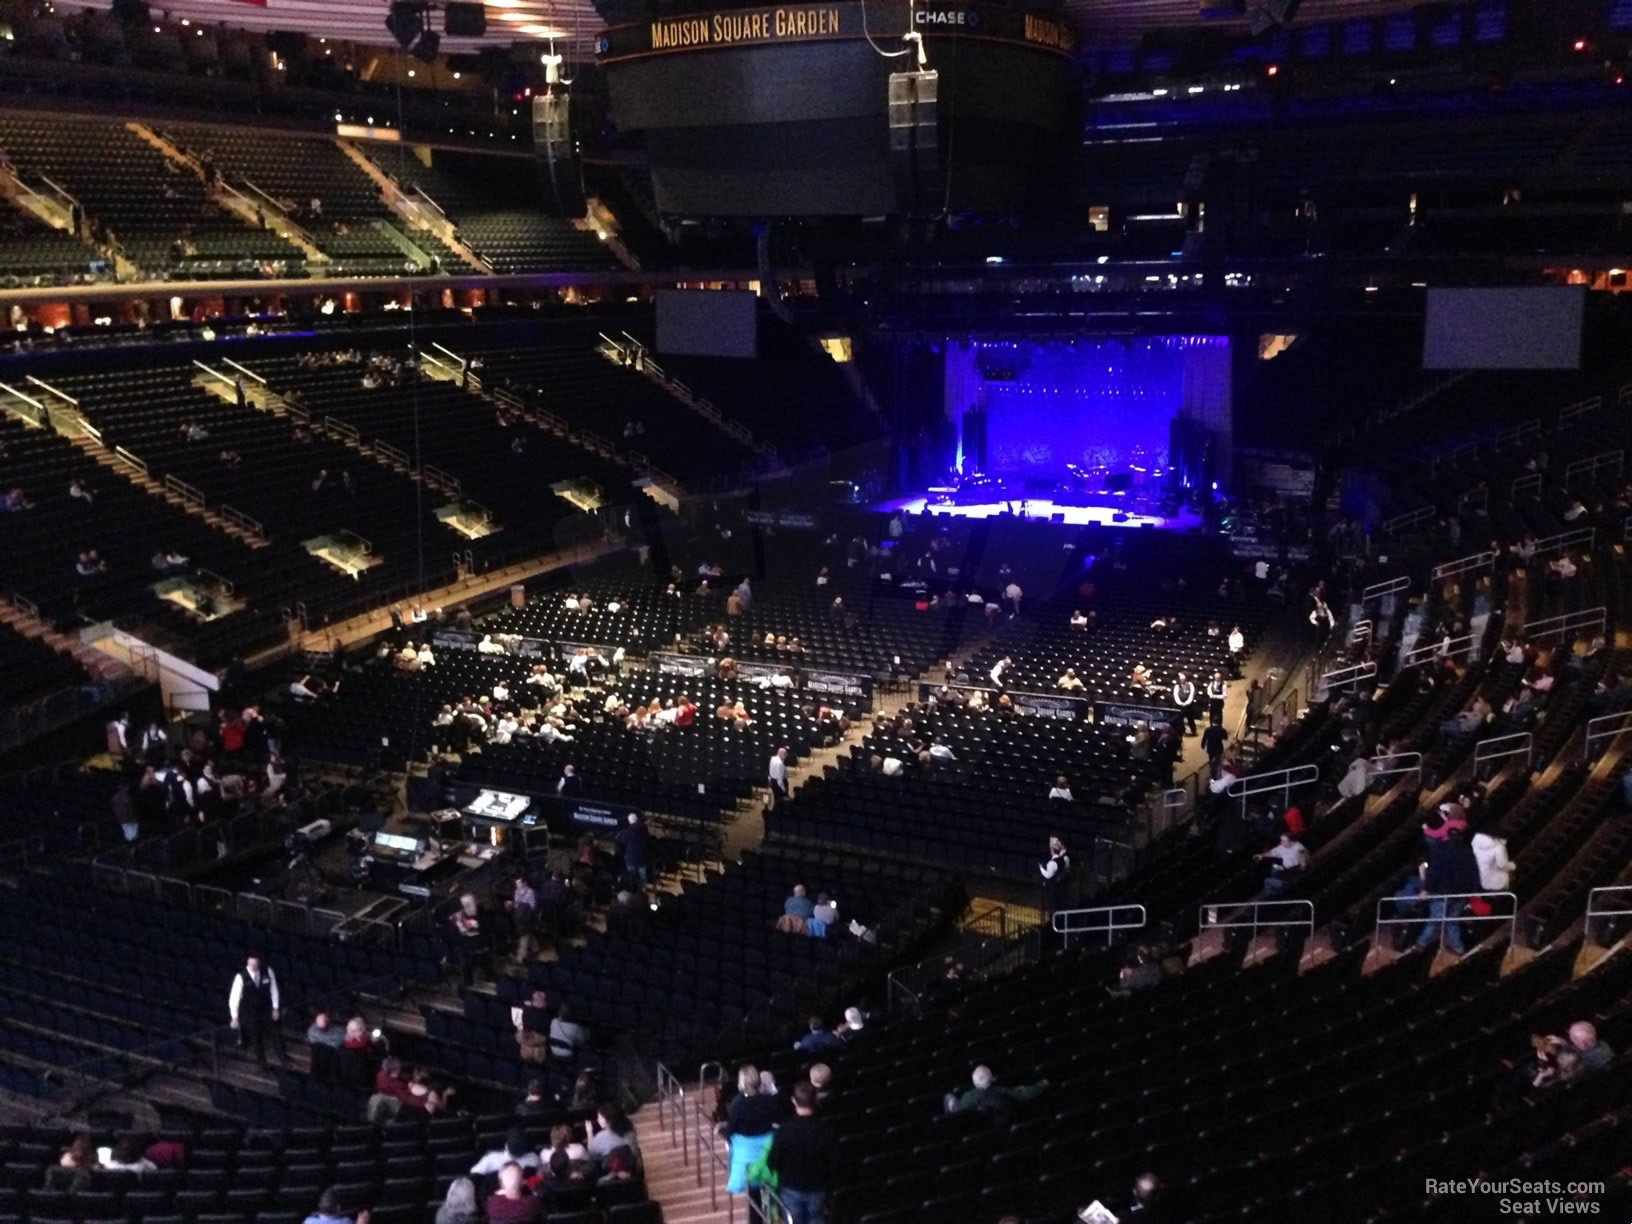 Madison Square Garden Section 206 Concert Seating RateYourSeatscom